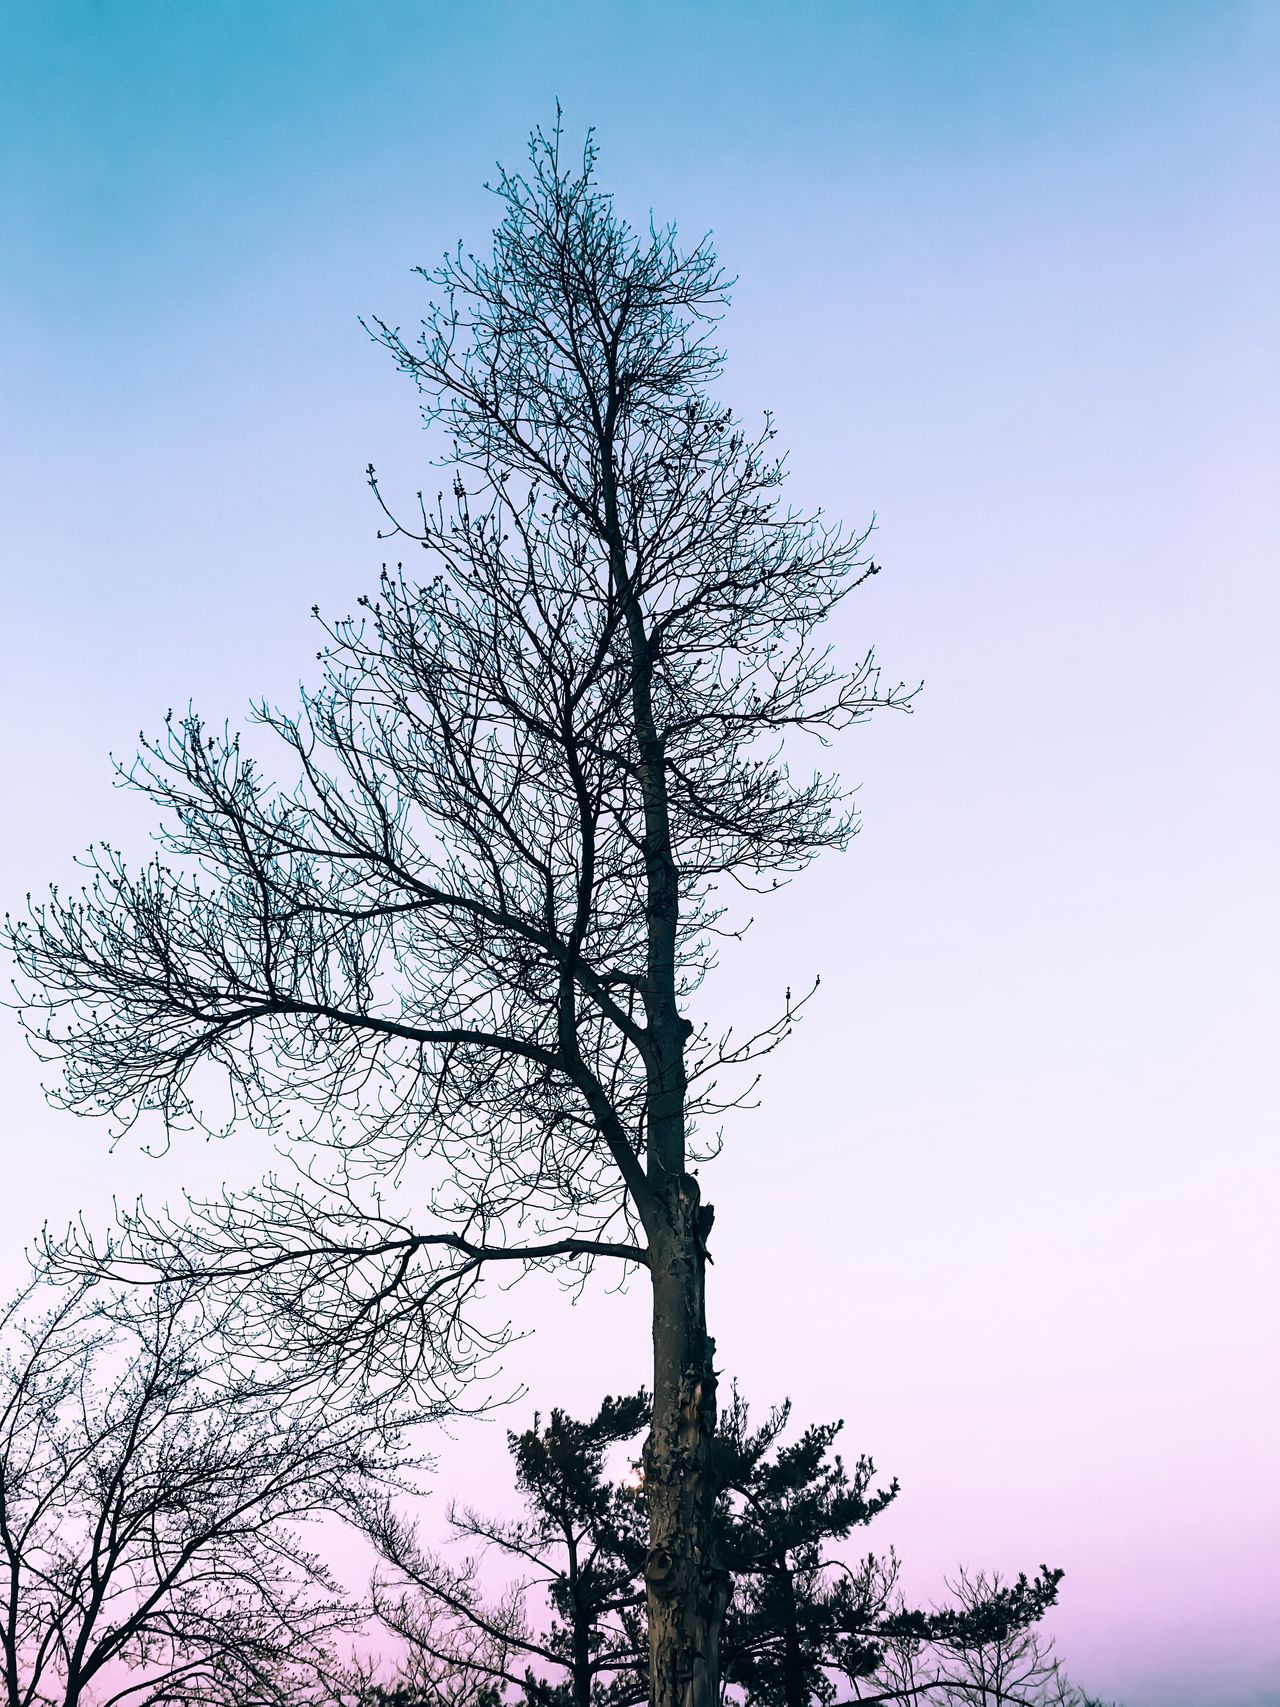 Tree Nature Low Angle View Branch Sky Bare Tree Growth No People Tranquility Beauty In Nature Outdoors Clear Sky Day Scenics Tranquil Scene Treetop Sunset Aesthetics Minimalism Beauty In Nature